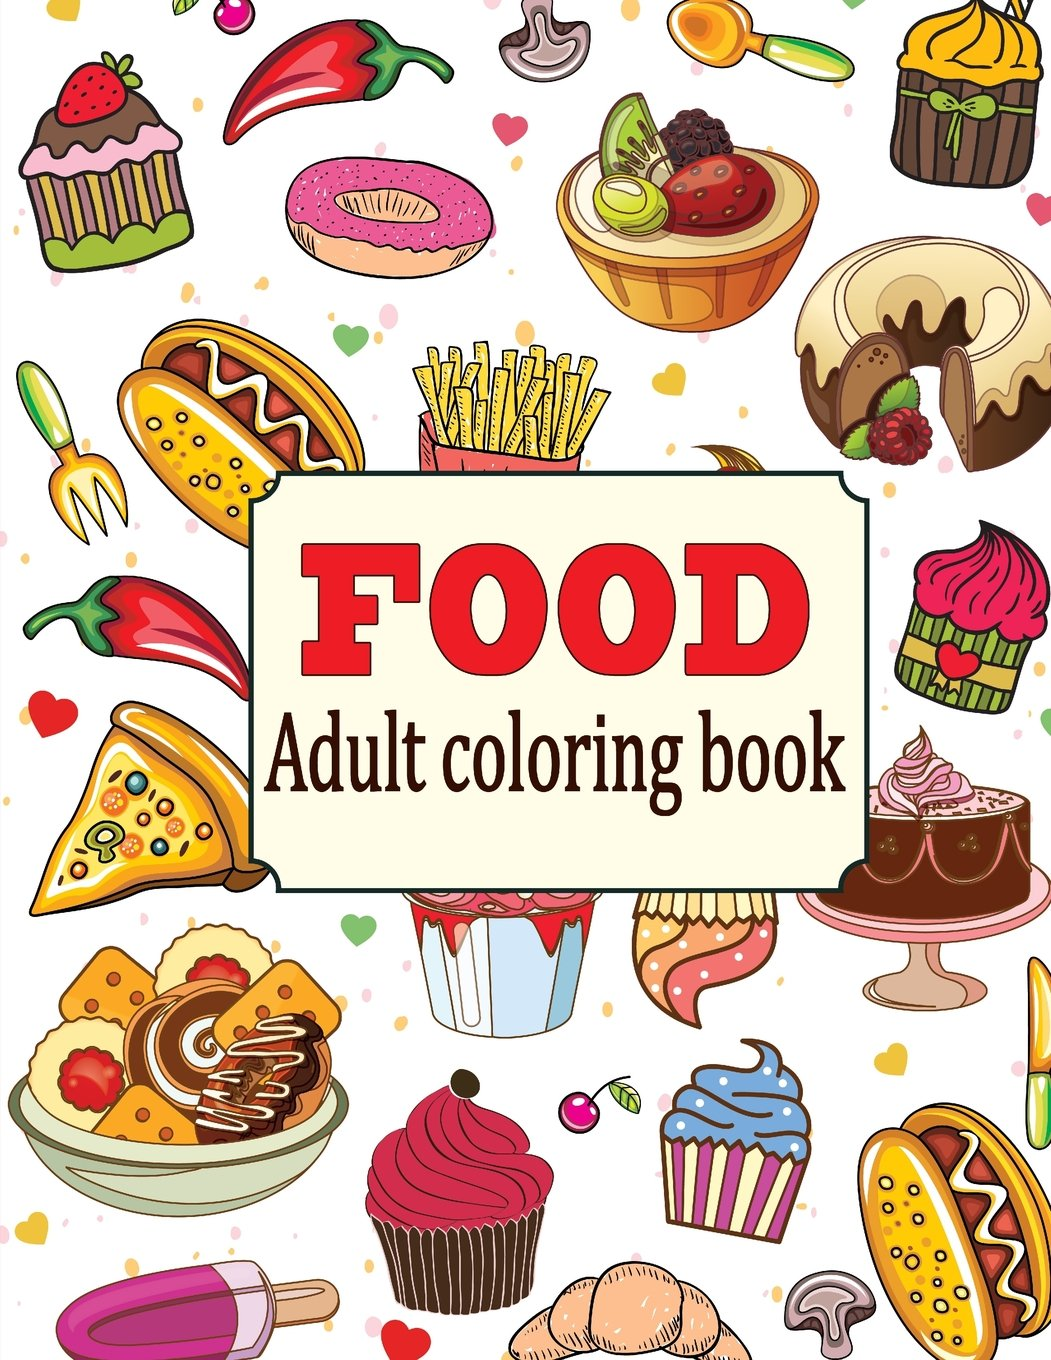 - Food: An Adult Coloring Book With Fun, Easy, And Relaxing Coloring